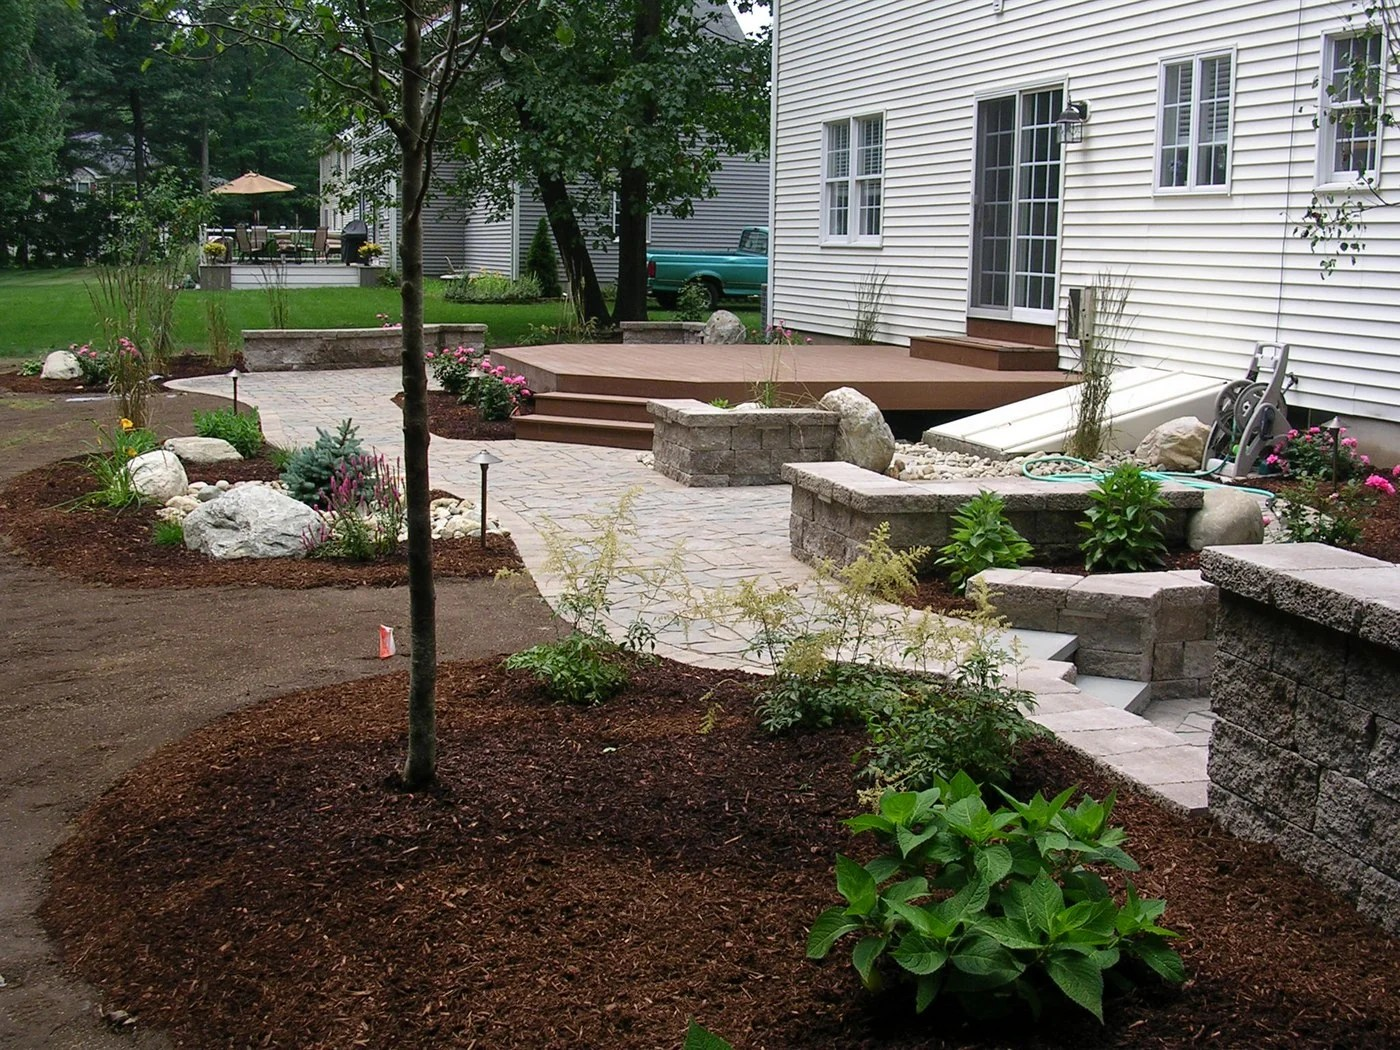 How Much does a Deck Cost vs a Paver Patio? on Backyard Patio Cost id=75340